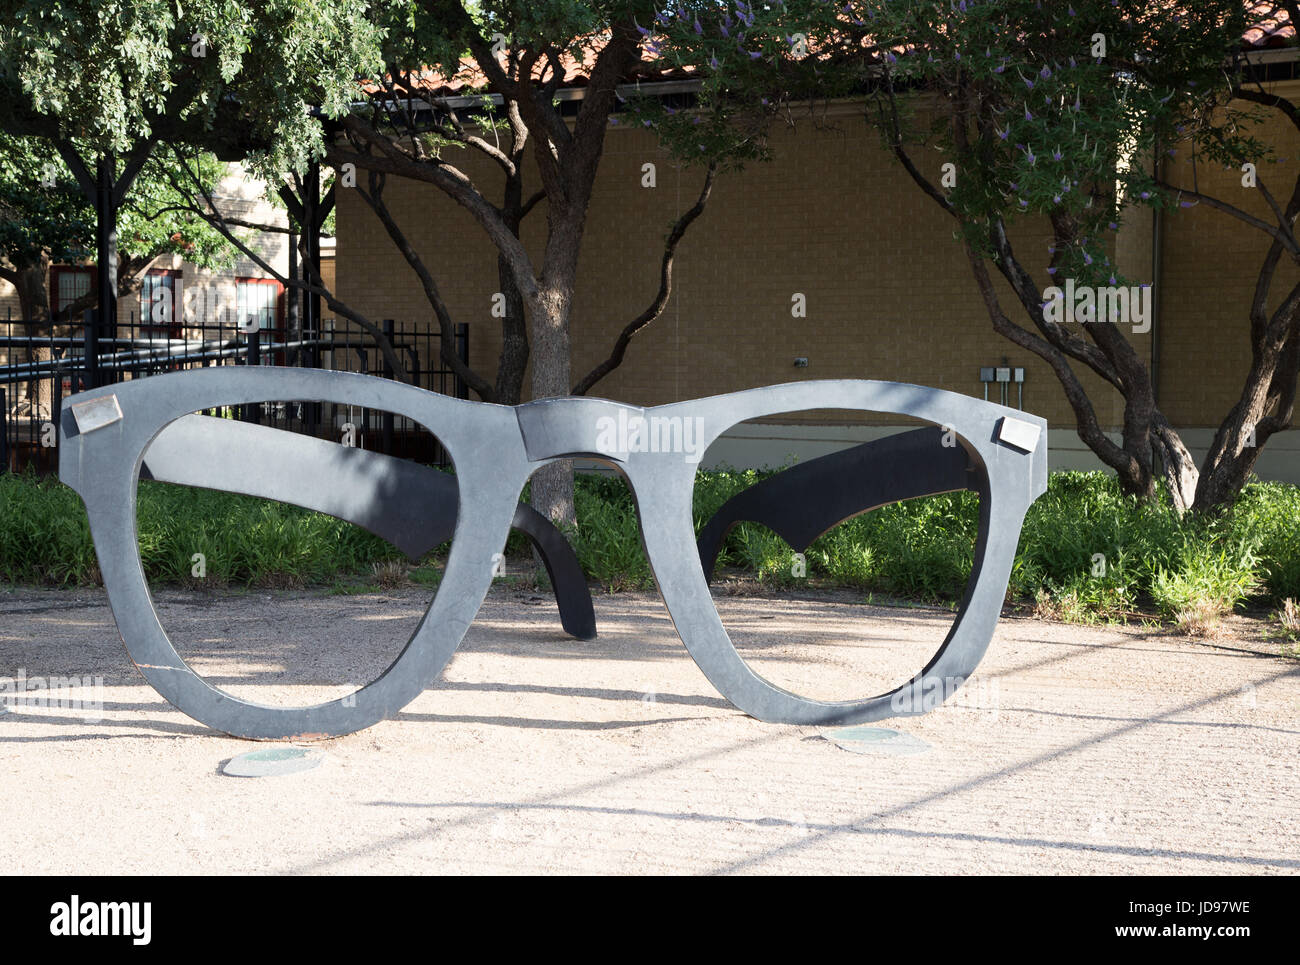 Buddy Holly's giant glasses greet visitors at the Buddy Holly Center - Stock Image